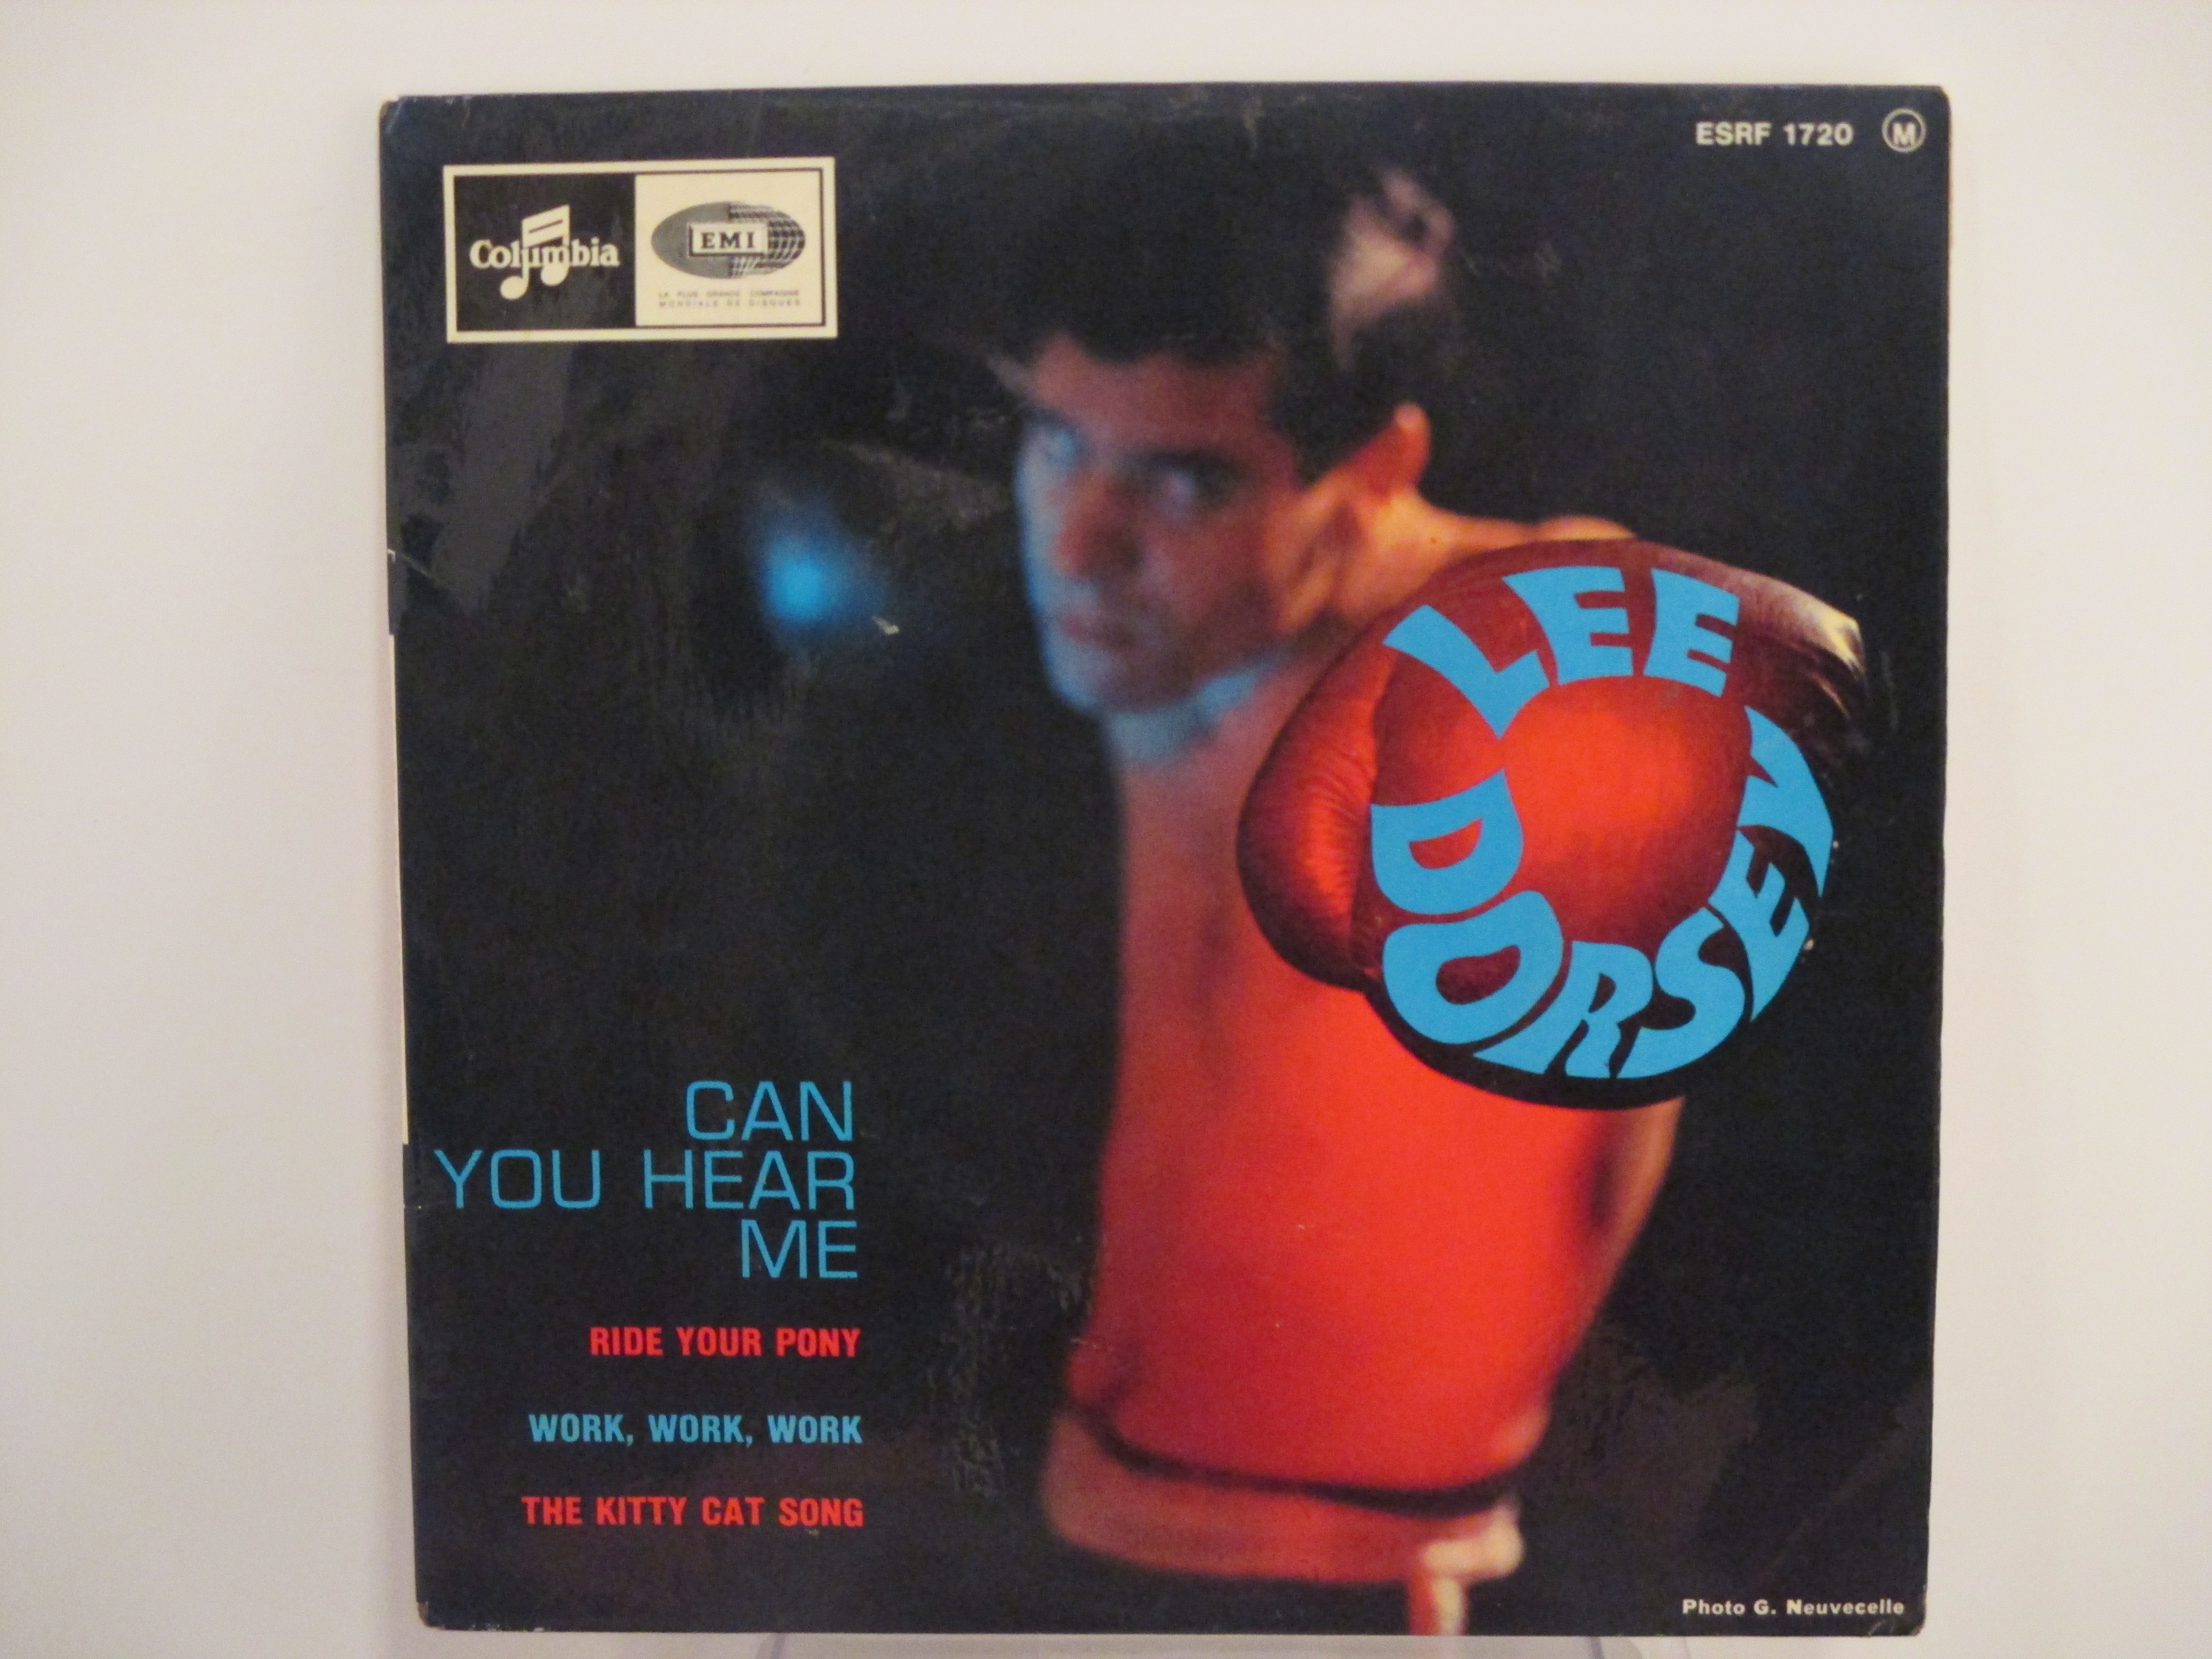 LEE DORSEY : (EP) Ride your pony / Can you hear me / Work, work, work / The kitty cat song